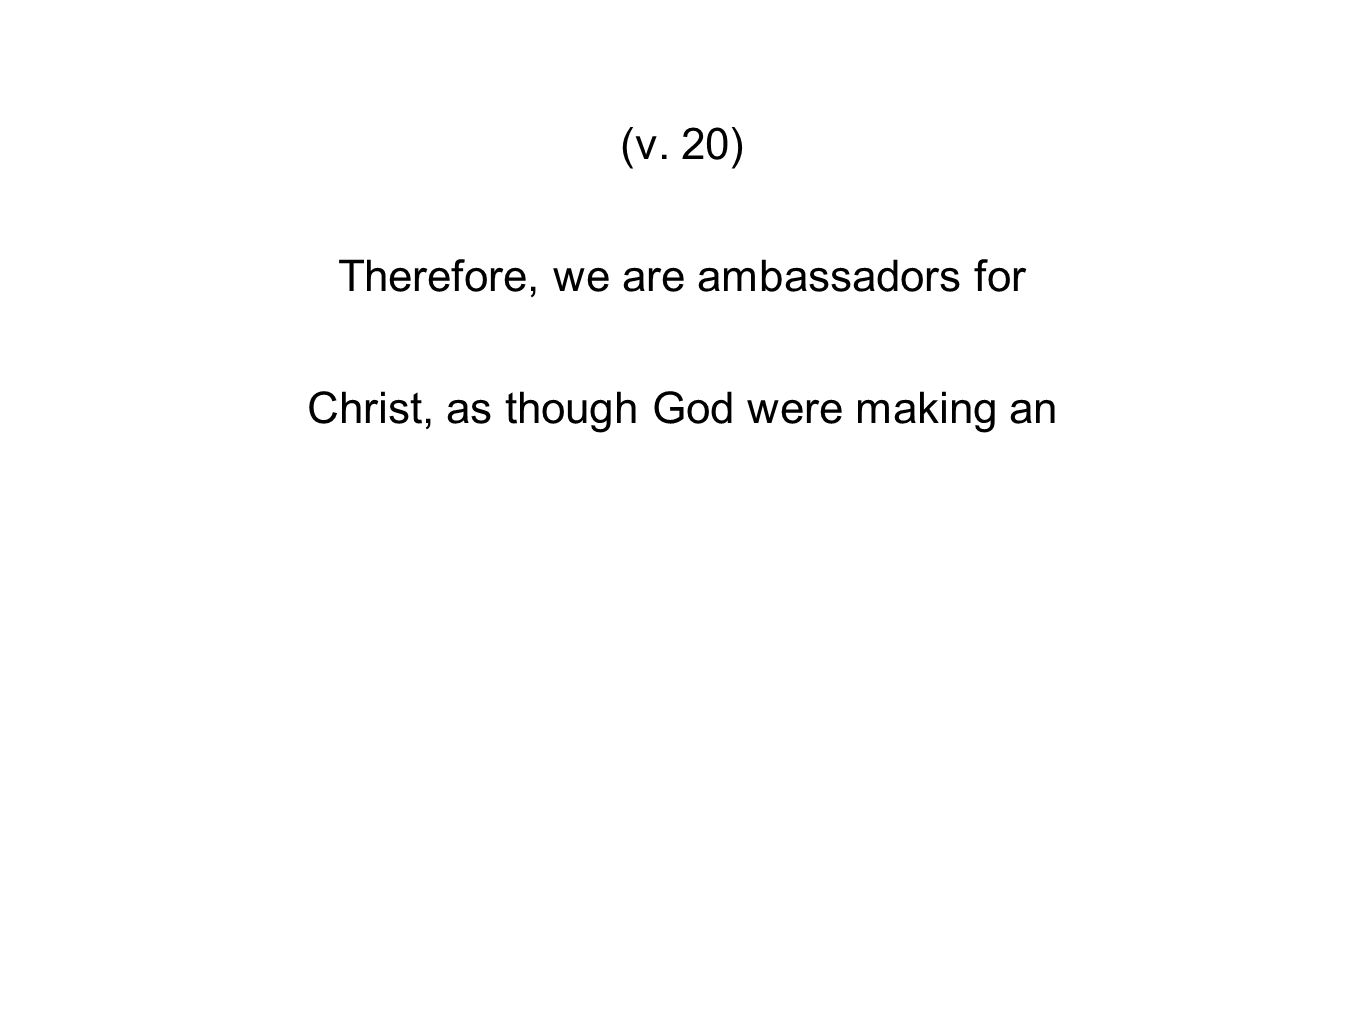 (v. 20) Therefore, we are ambassadors for Christ, as though God were making an